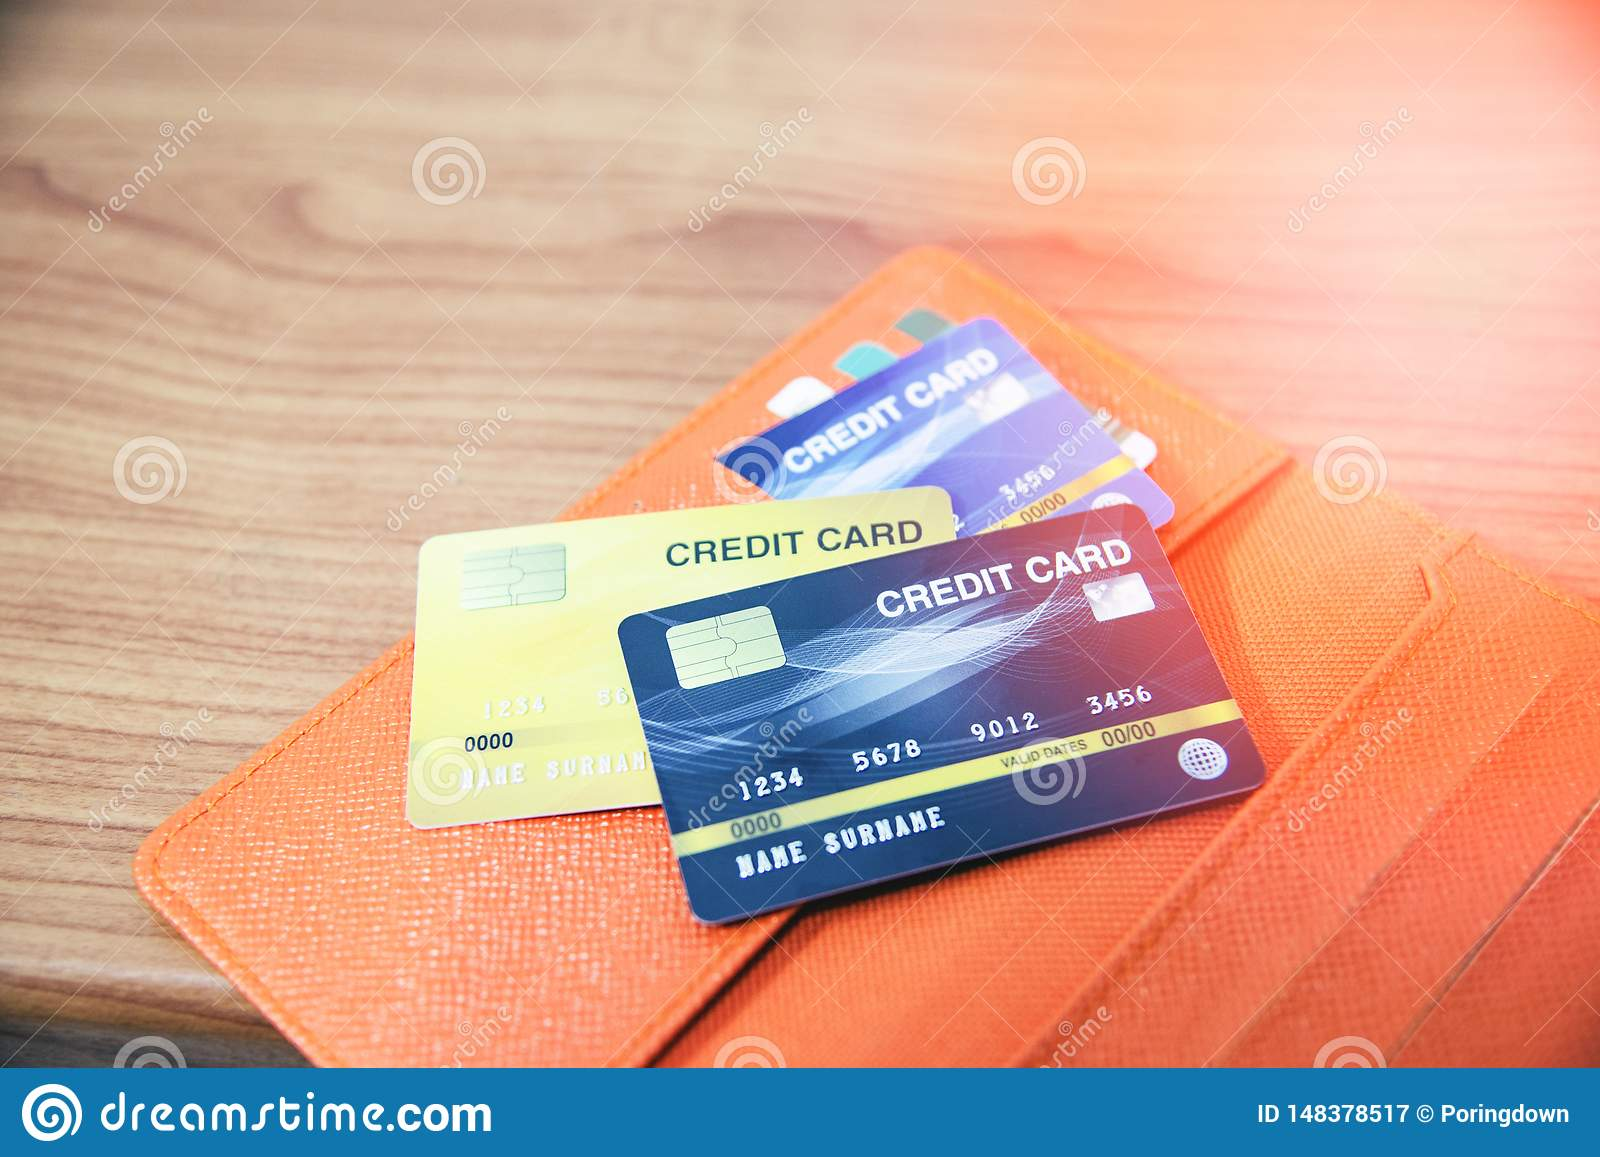 Credit Card In Wallet On The Wooden Table Stock Image ...